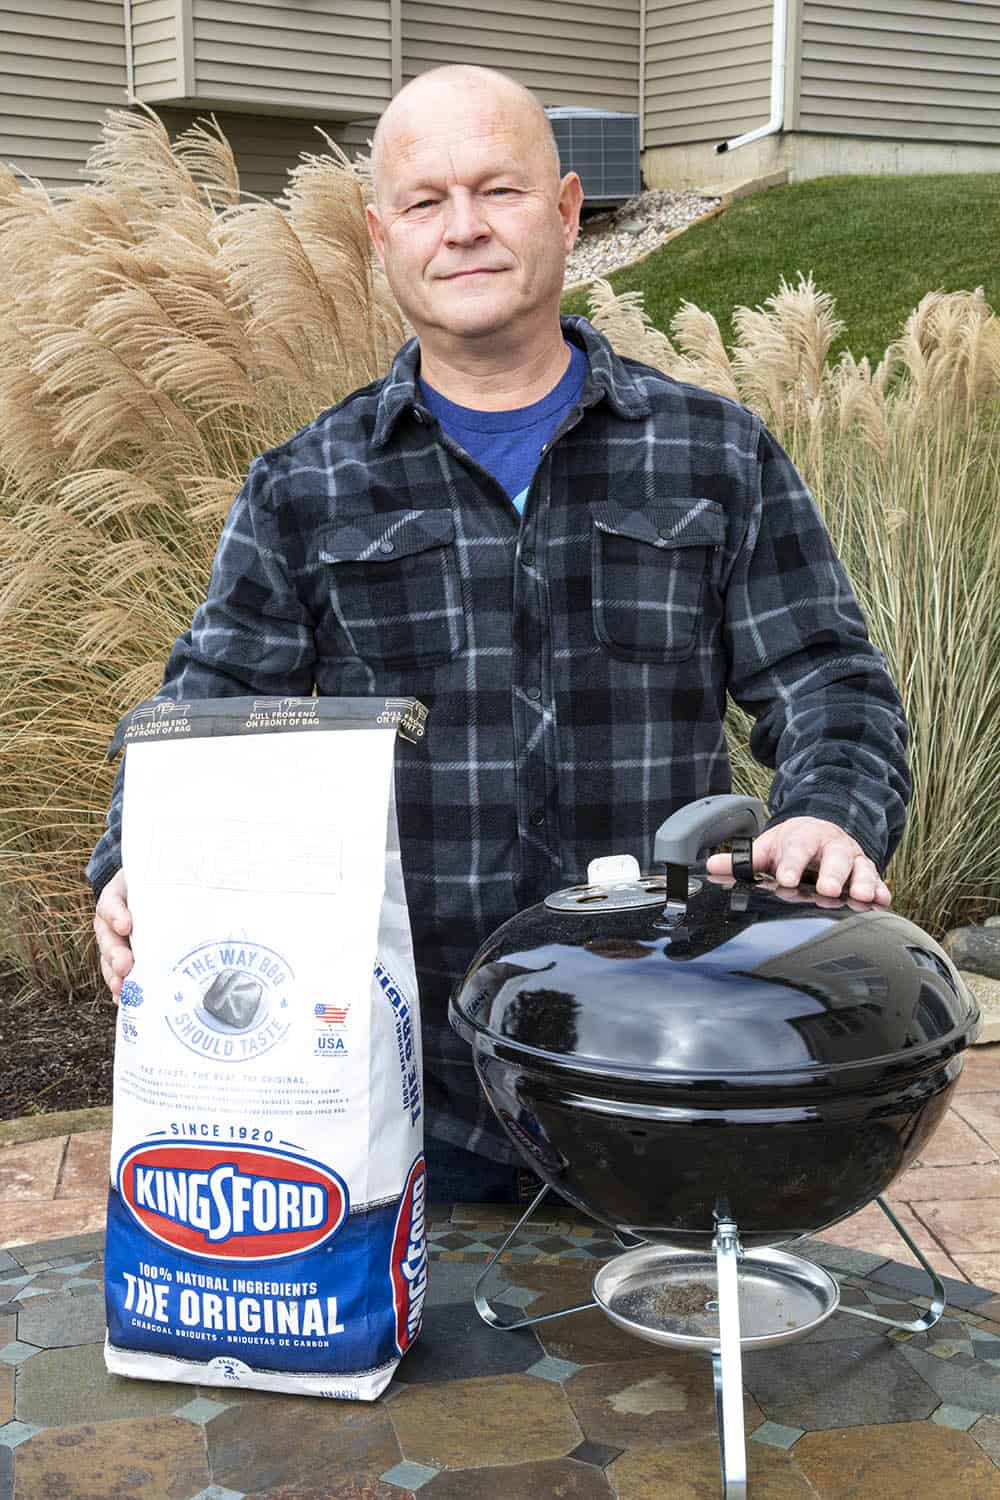 Mike standing in his backyard, ready to fire up the grill